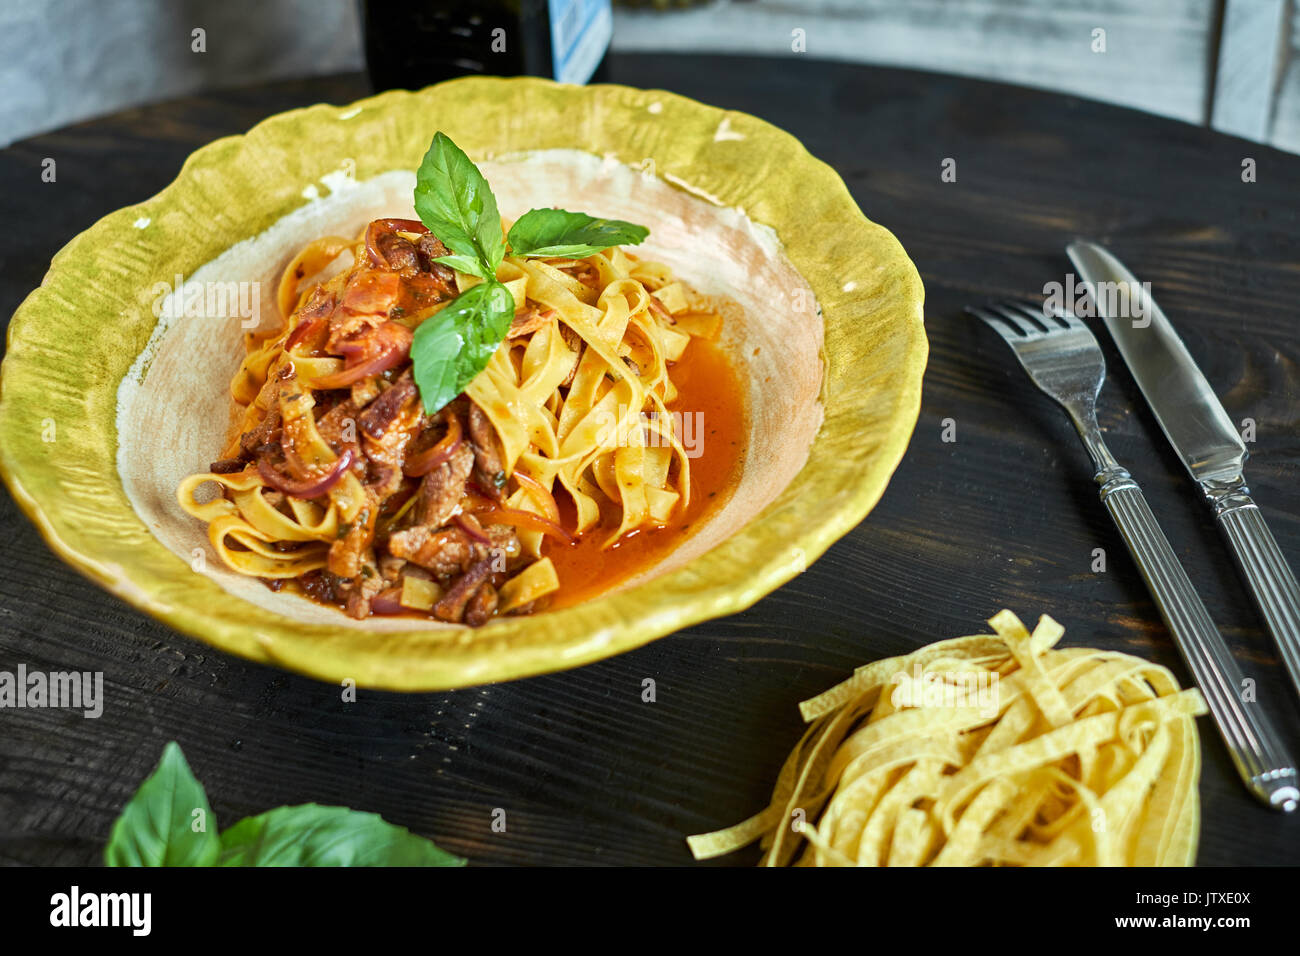 Italian penne pasta with tomatoes and pesto in a restaurant jpg Stock Photo